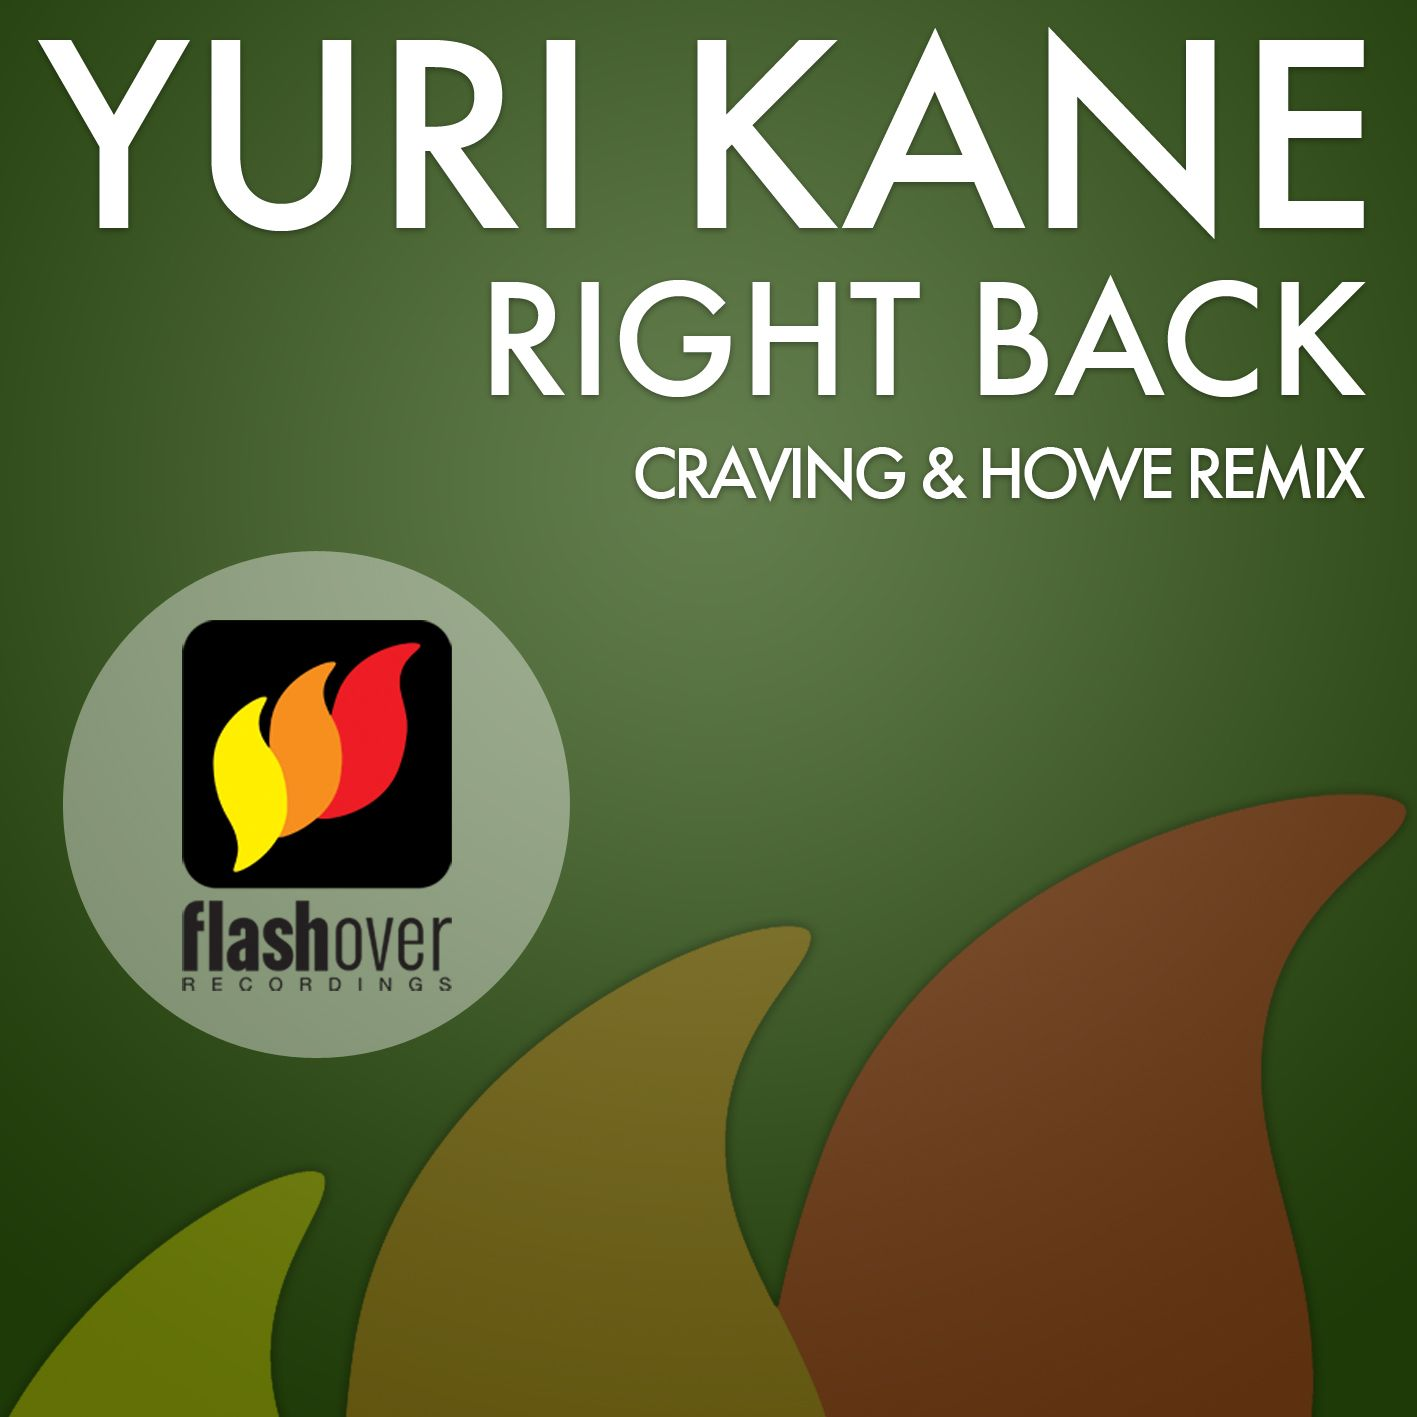 Yuri Kane Right Back Craving Howe Remix Yuri Kane   Right Back (Craving & Howe Remix)